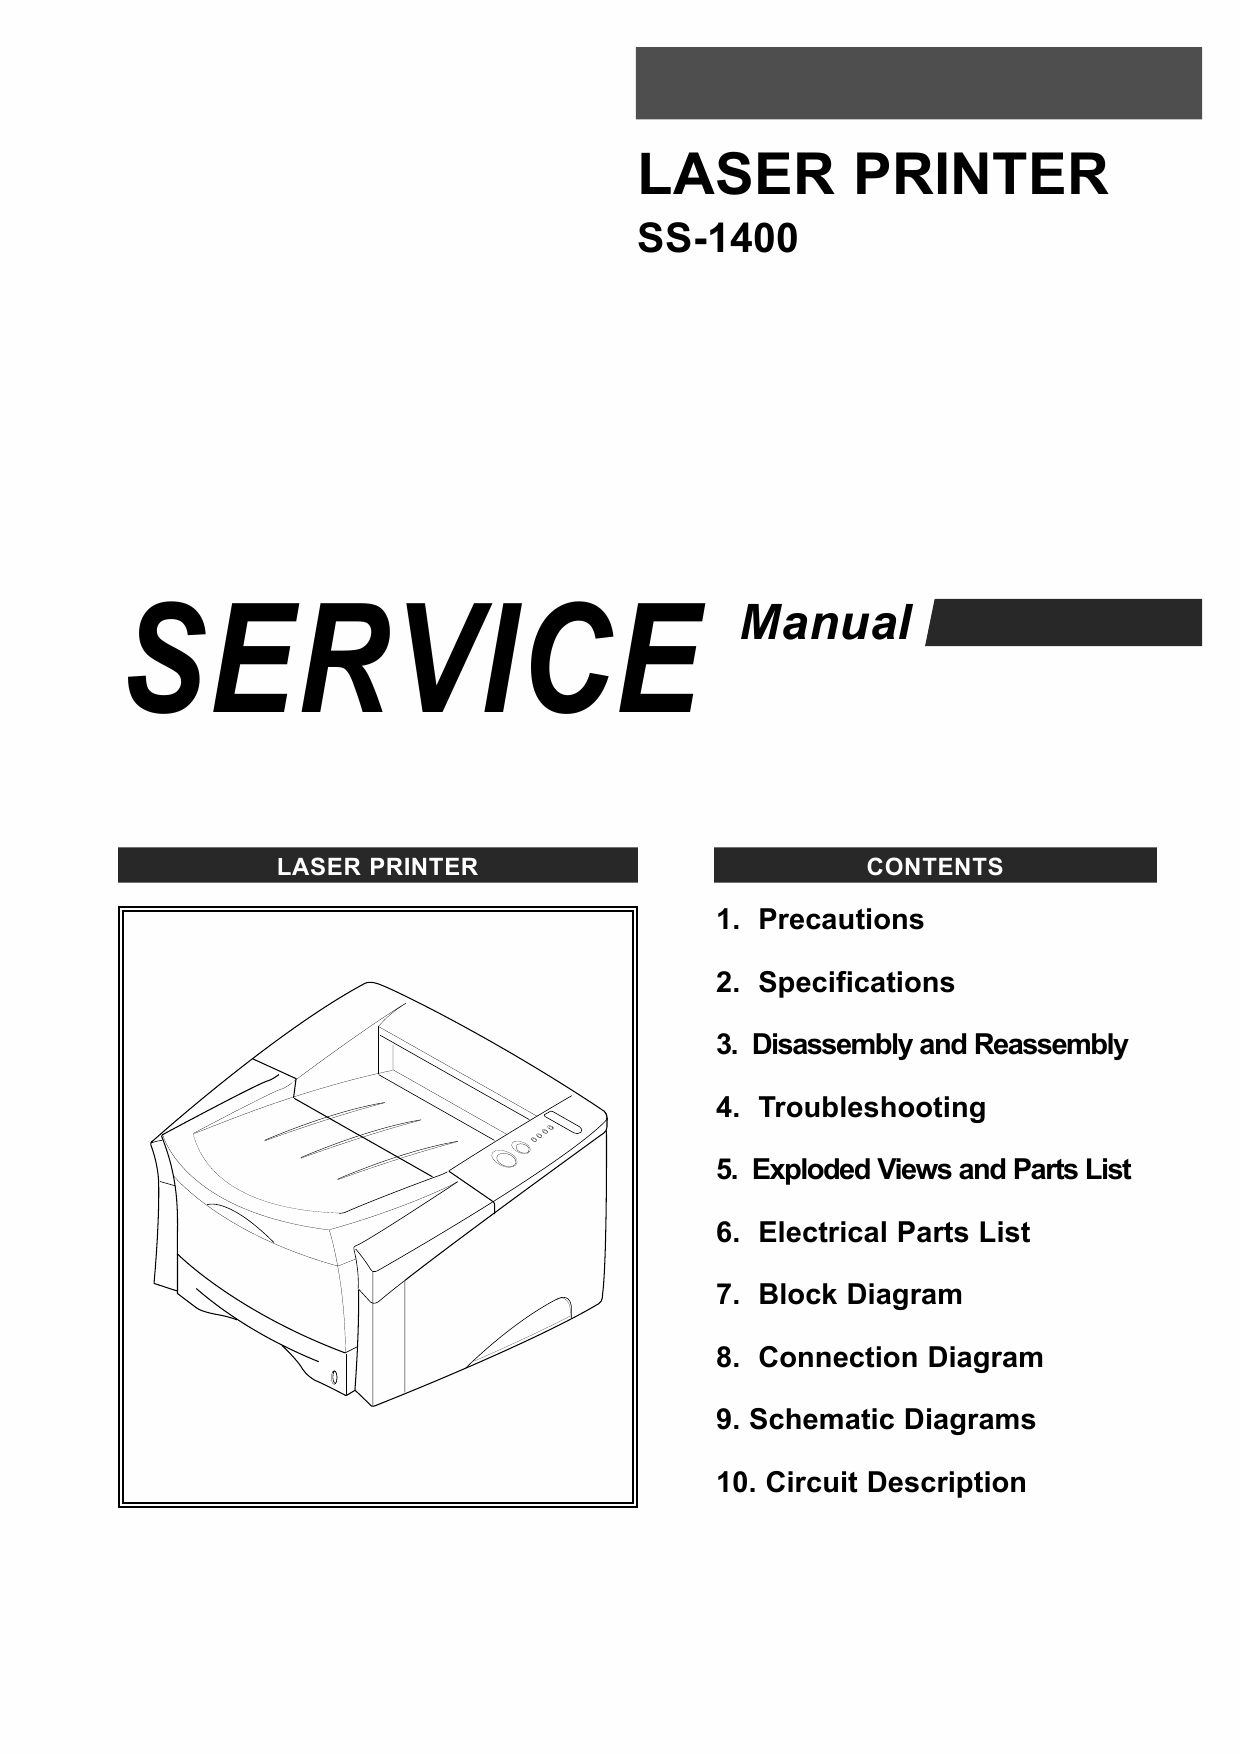 Samsung Laser-Printer SS-1400 Parts and Service Manual-1